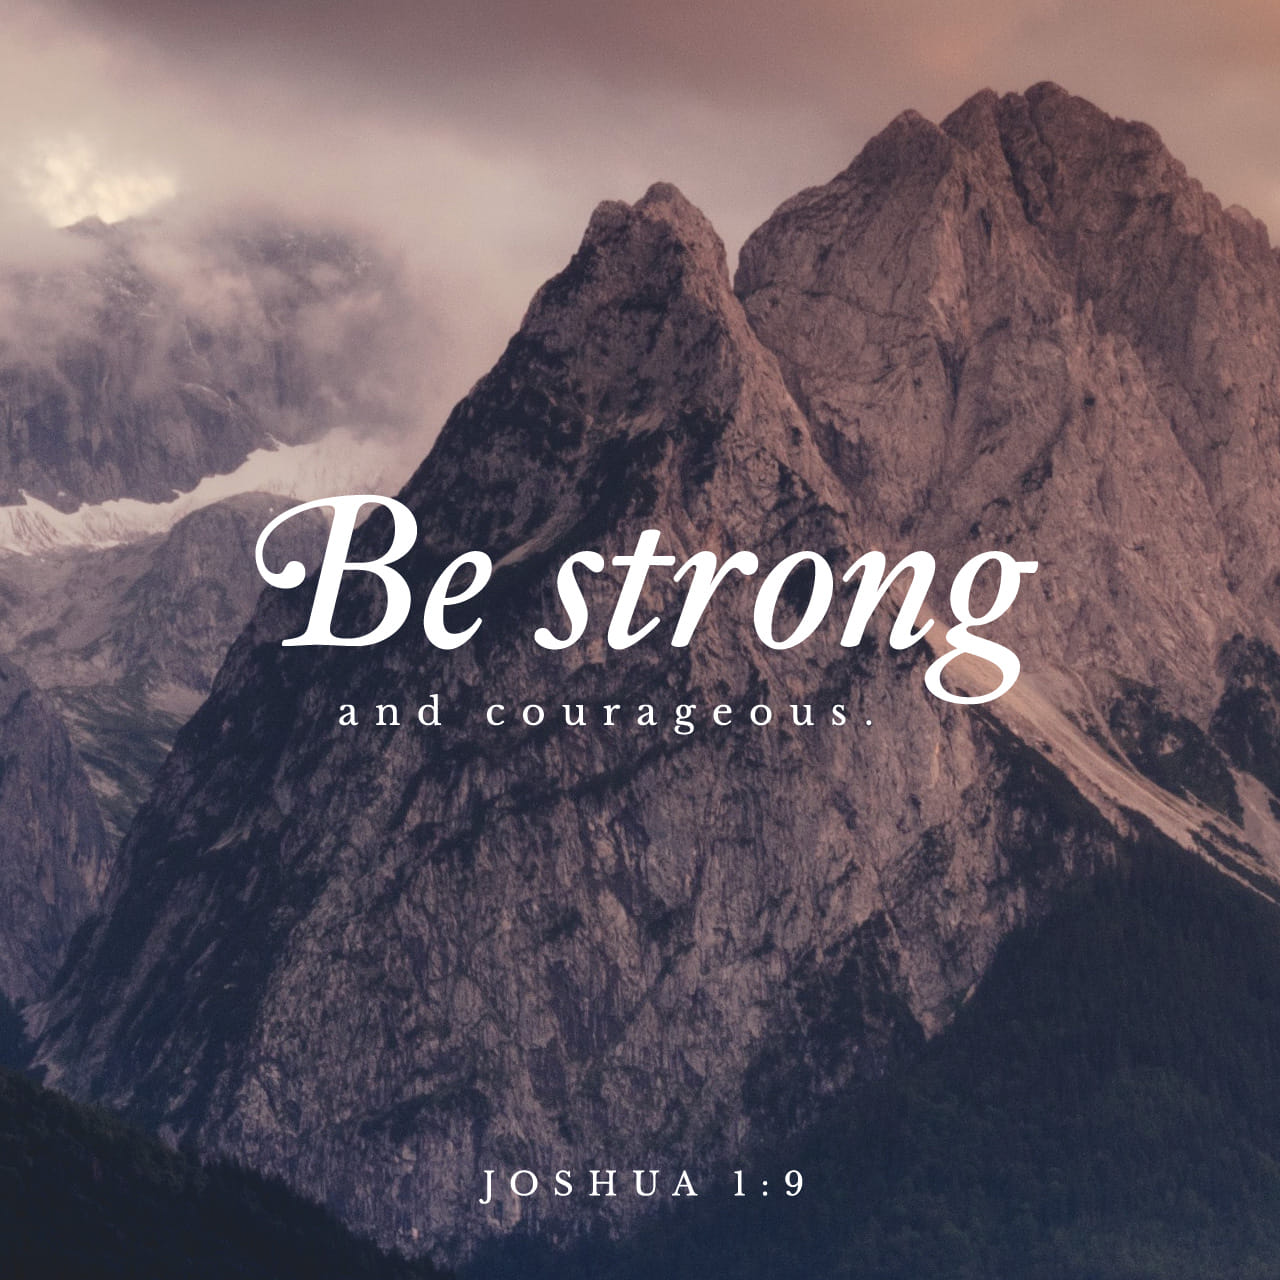 Bible Verse of the Day - day 207 - image 2642 (Joshua 1:9)